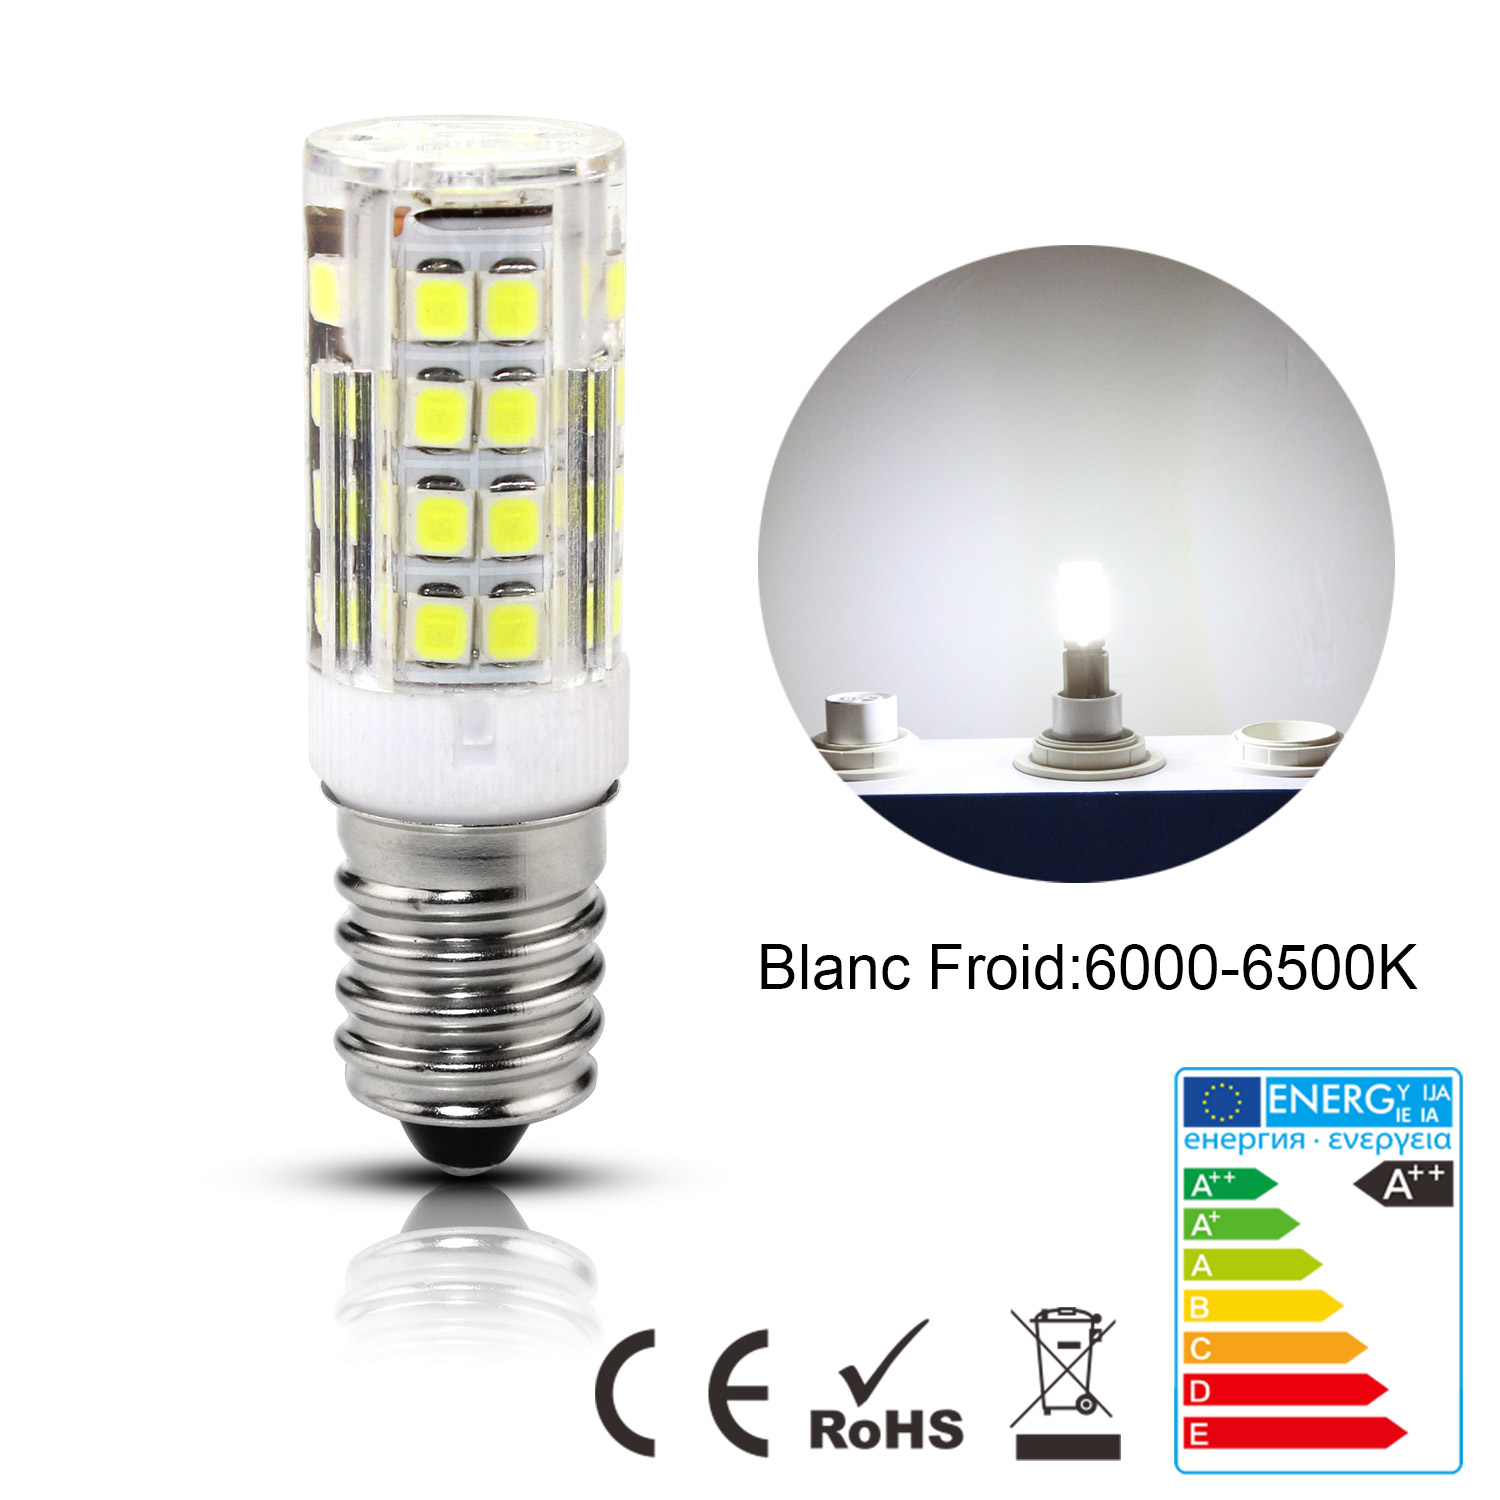 e14 5w led 51smd ampoule ma s lampe capsule remplace halog ne blanc chaud froid ebay. Black Bedroom Furniture Sets. Home Design Ideas